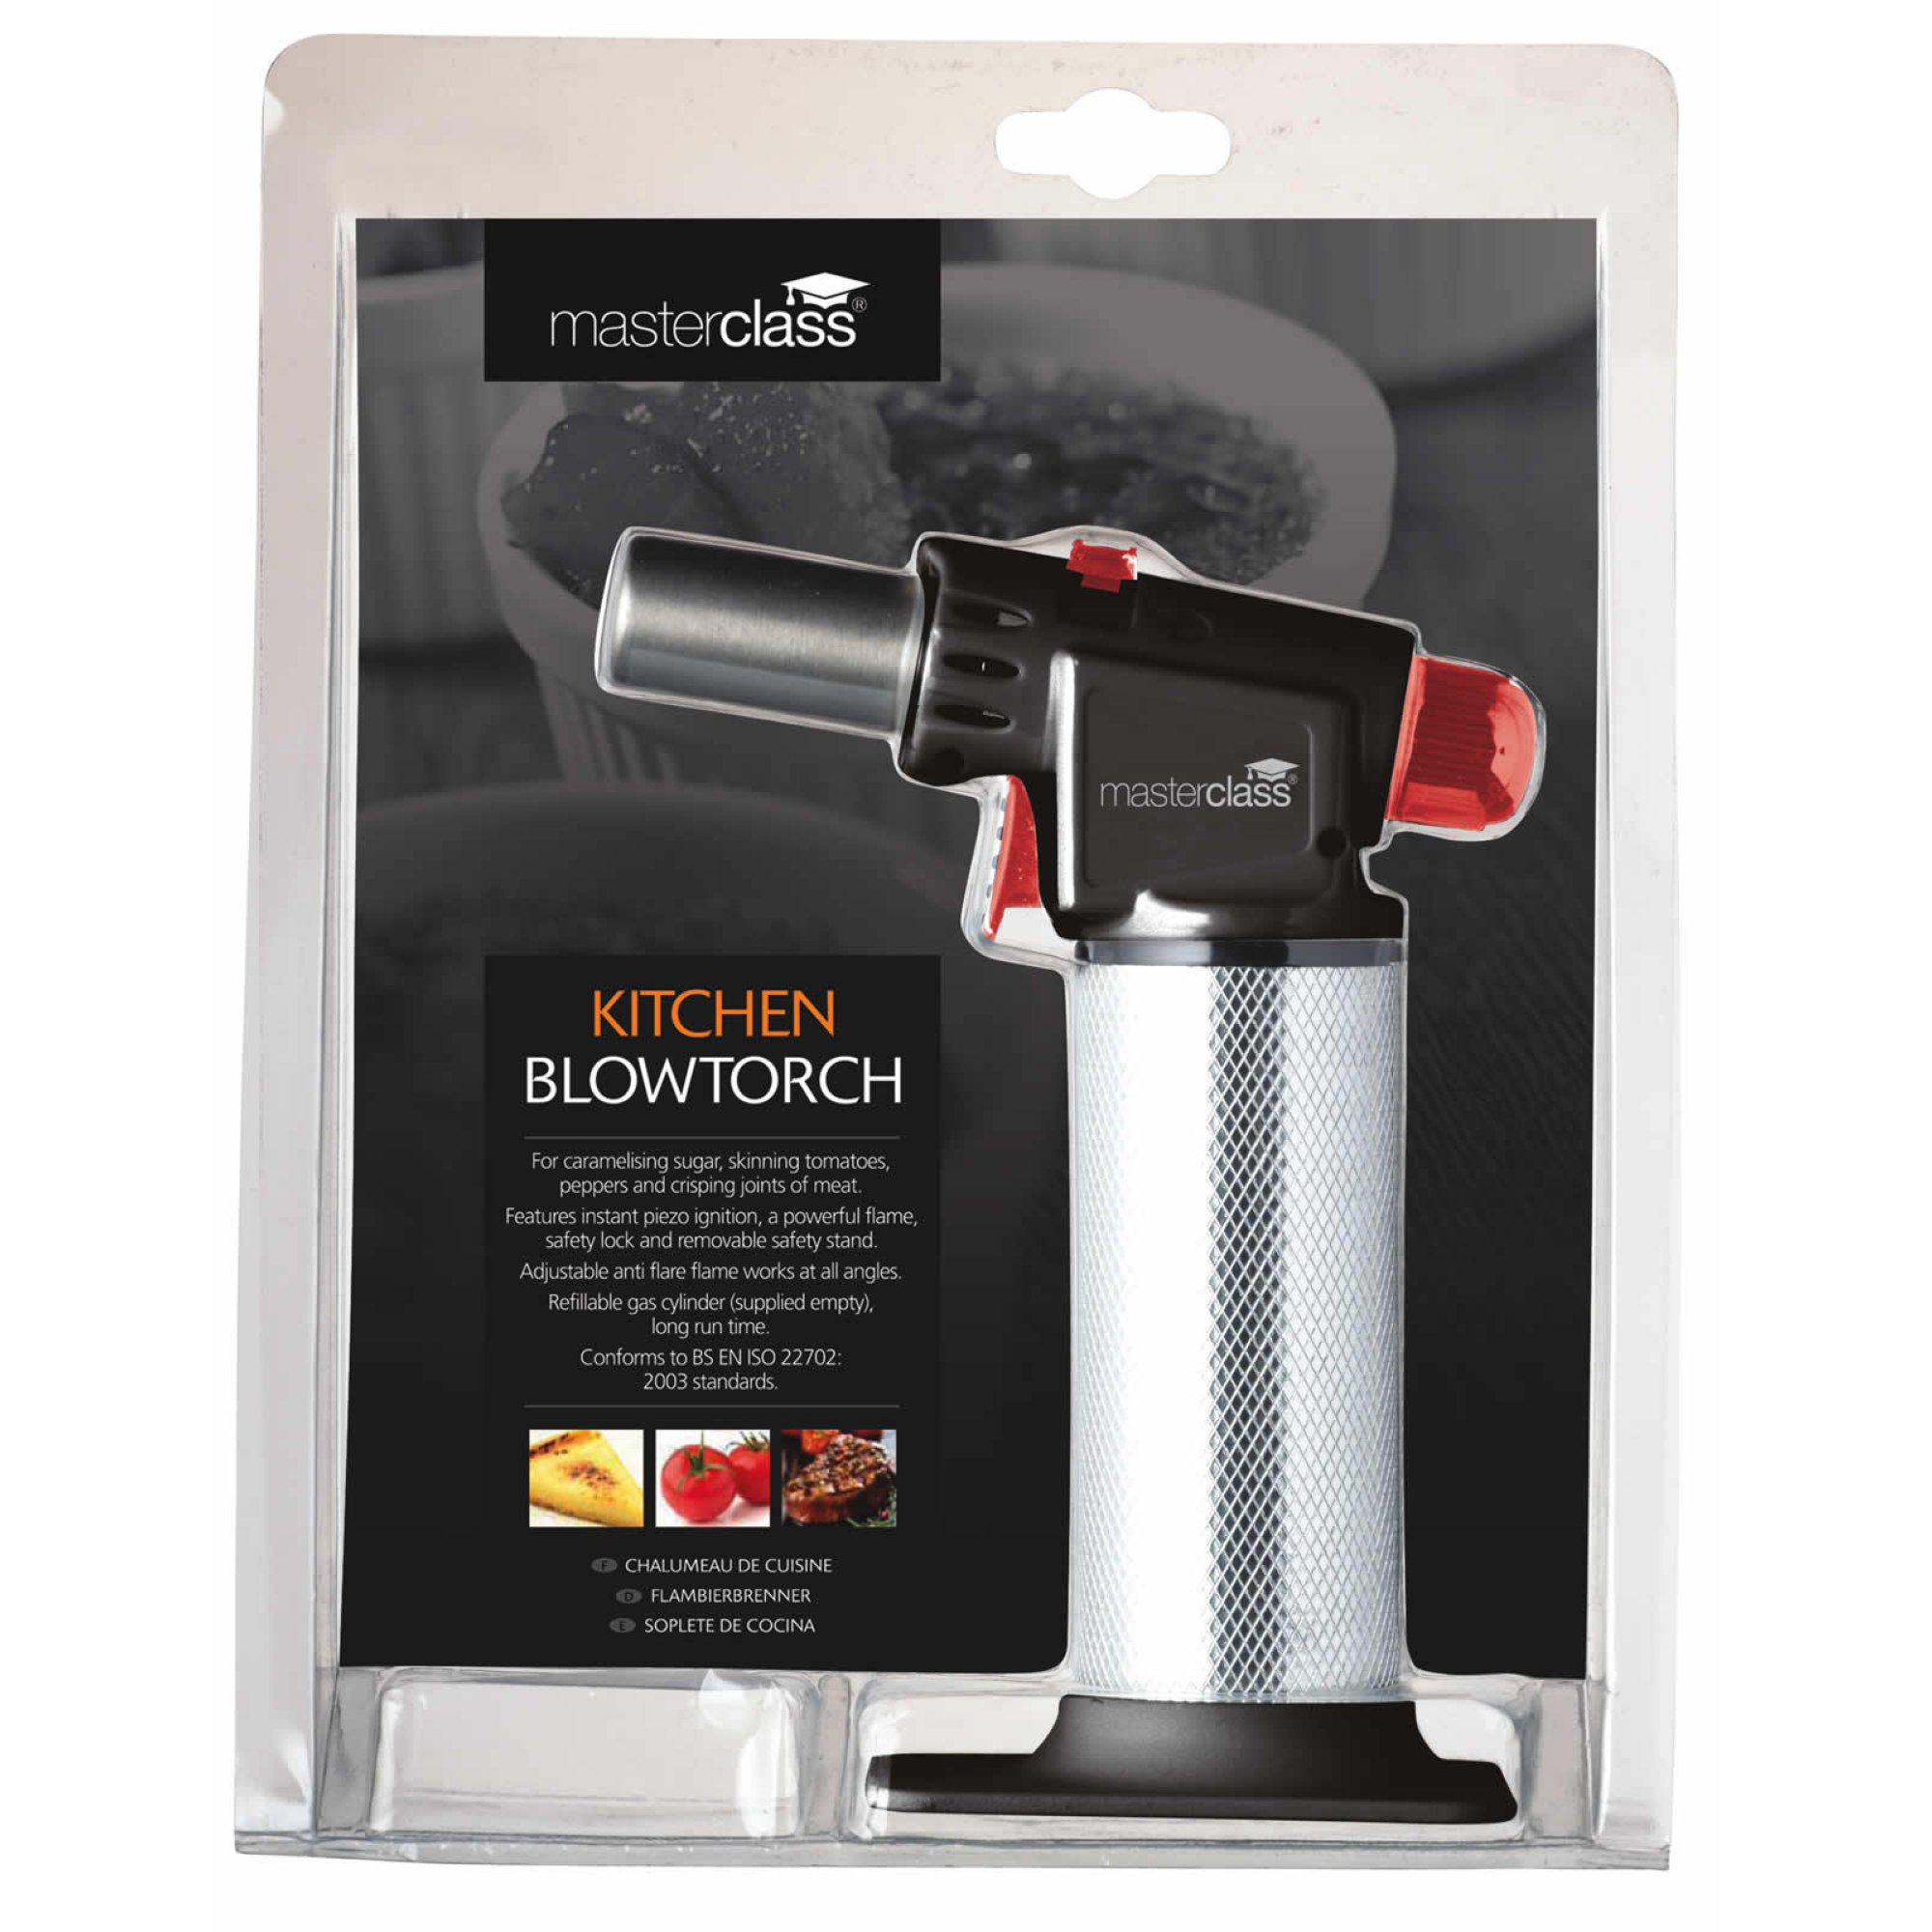 Masterclass Deluxe Professional Cook S Blowtorch At